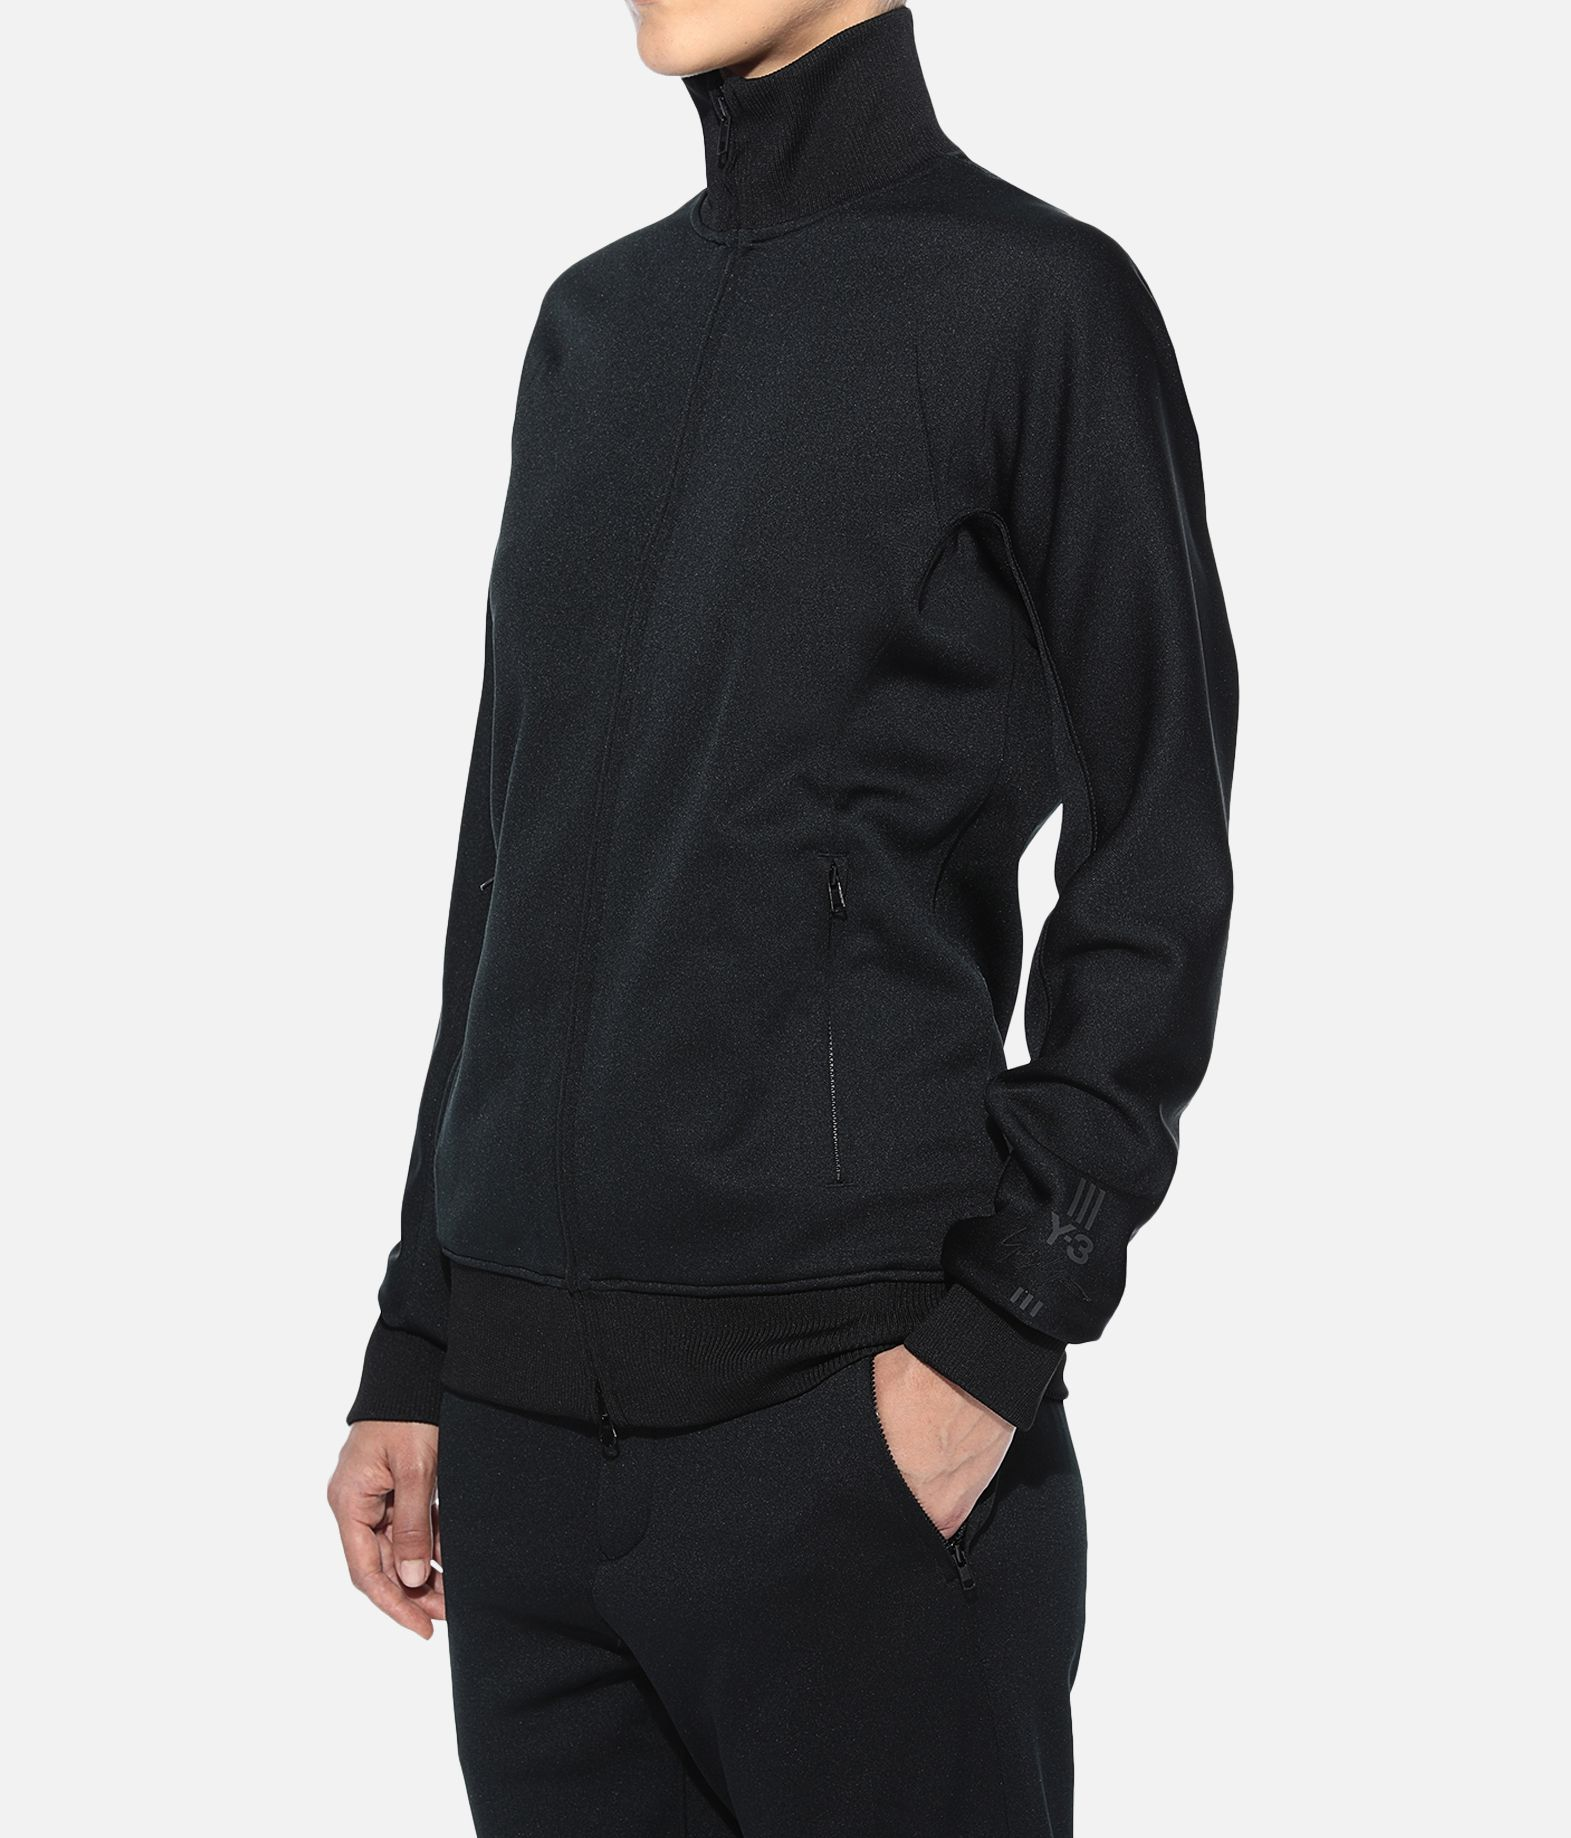 Y-3 Y-3 New Classic Track Jacket Giubbotto Donna e